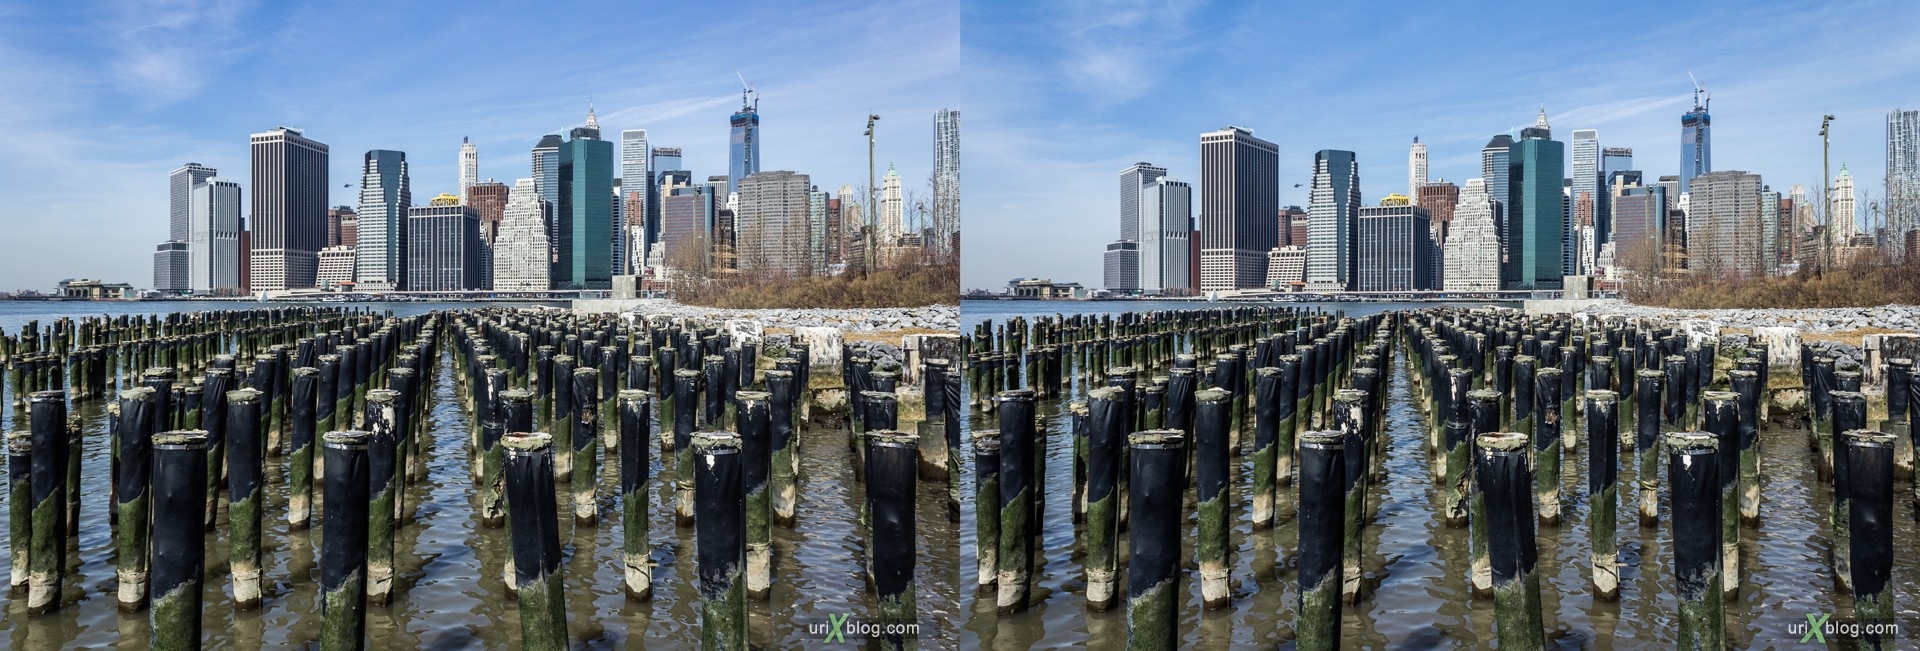 2013, Manhattan, Brooklyn, NYC, New York City, USA, 3D, stereo pair, cross-eyed, crossview, cross view stereo pair, stereoscopic